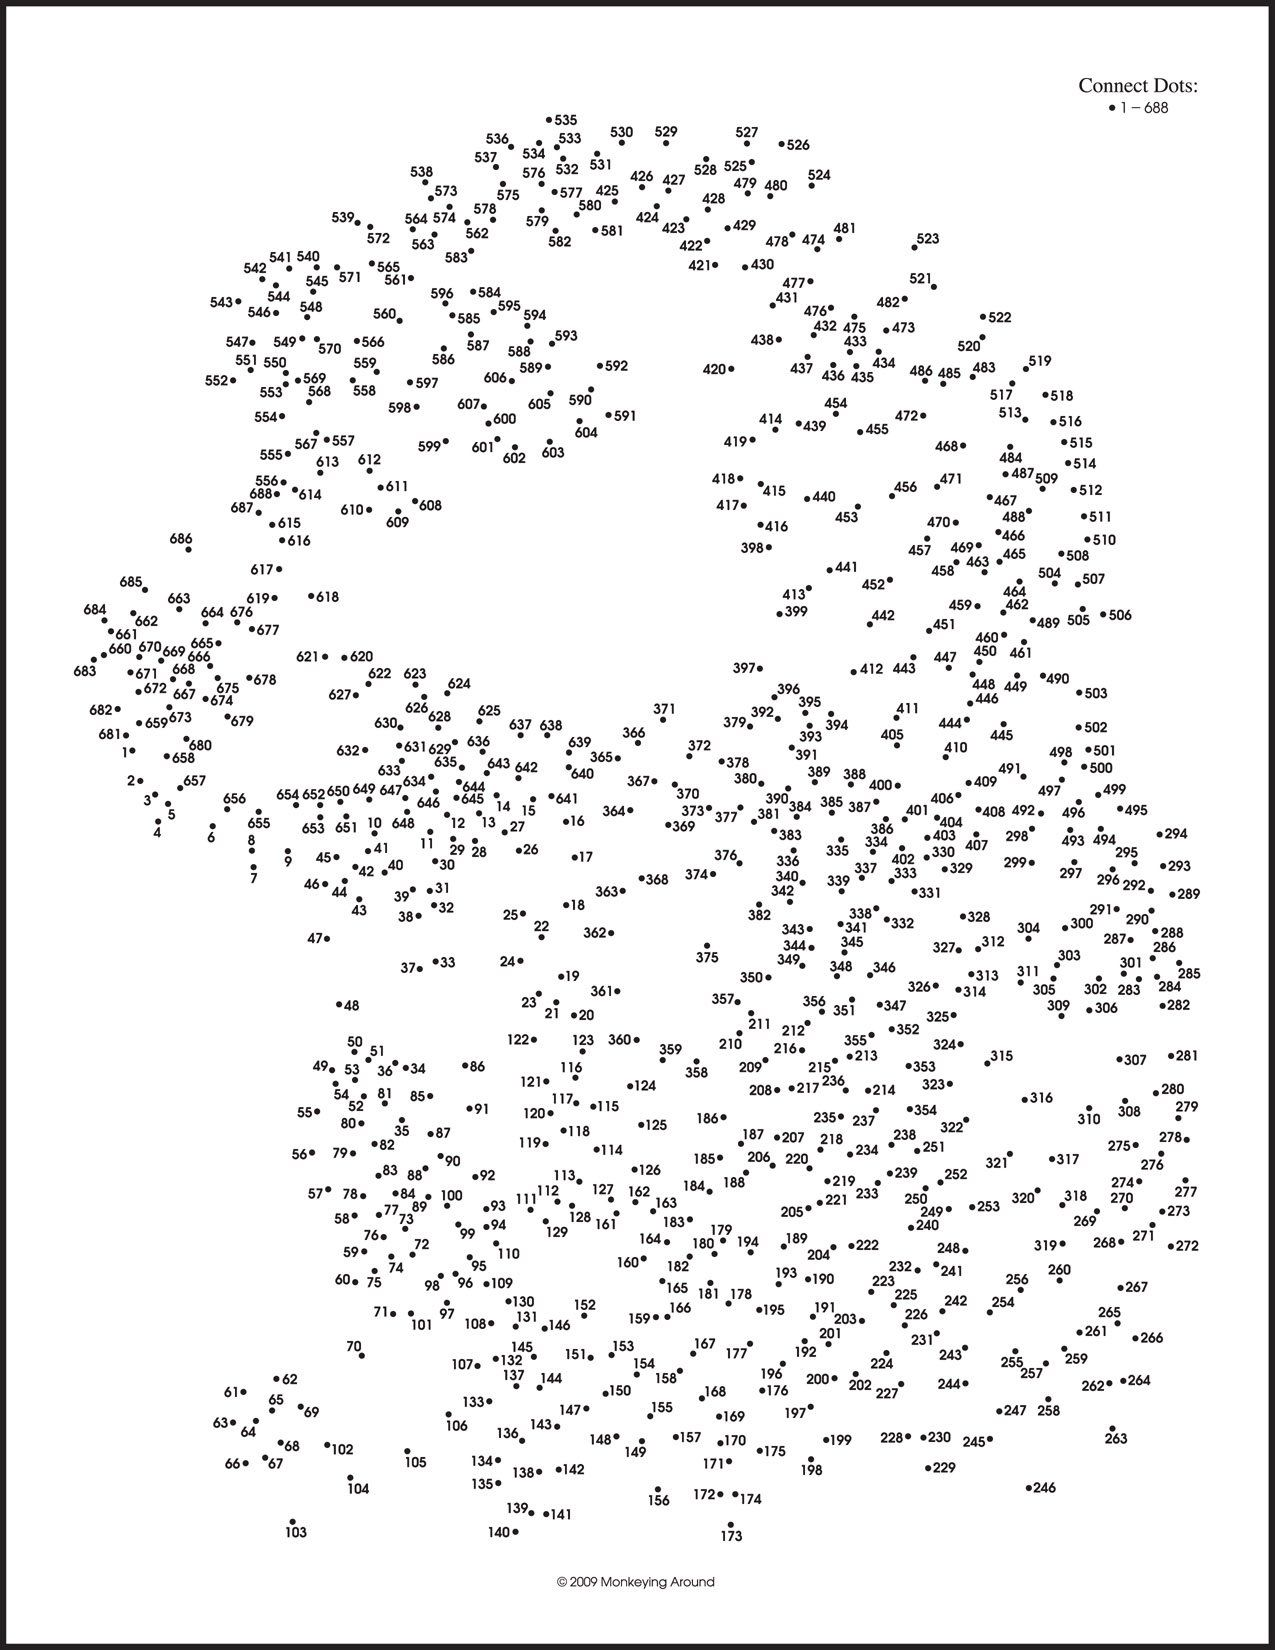 The Greatest Dot To Dot Super Challenge Book 7 Greatest Dot To Dot Super Challenge David Kalviti Dot To Dot Printables Connect The Dots Dot To Dot Puzzles